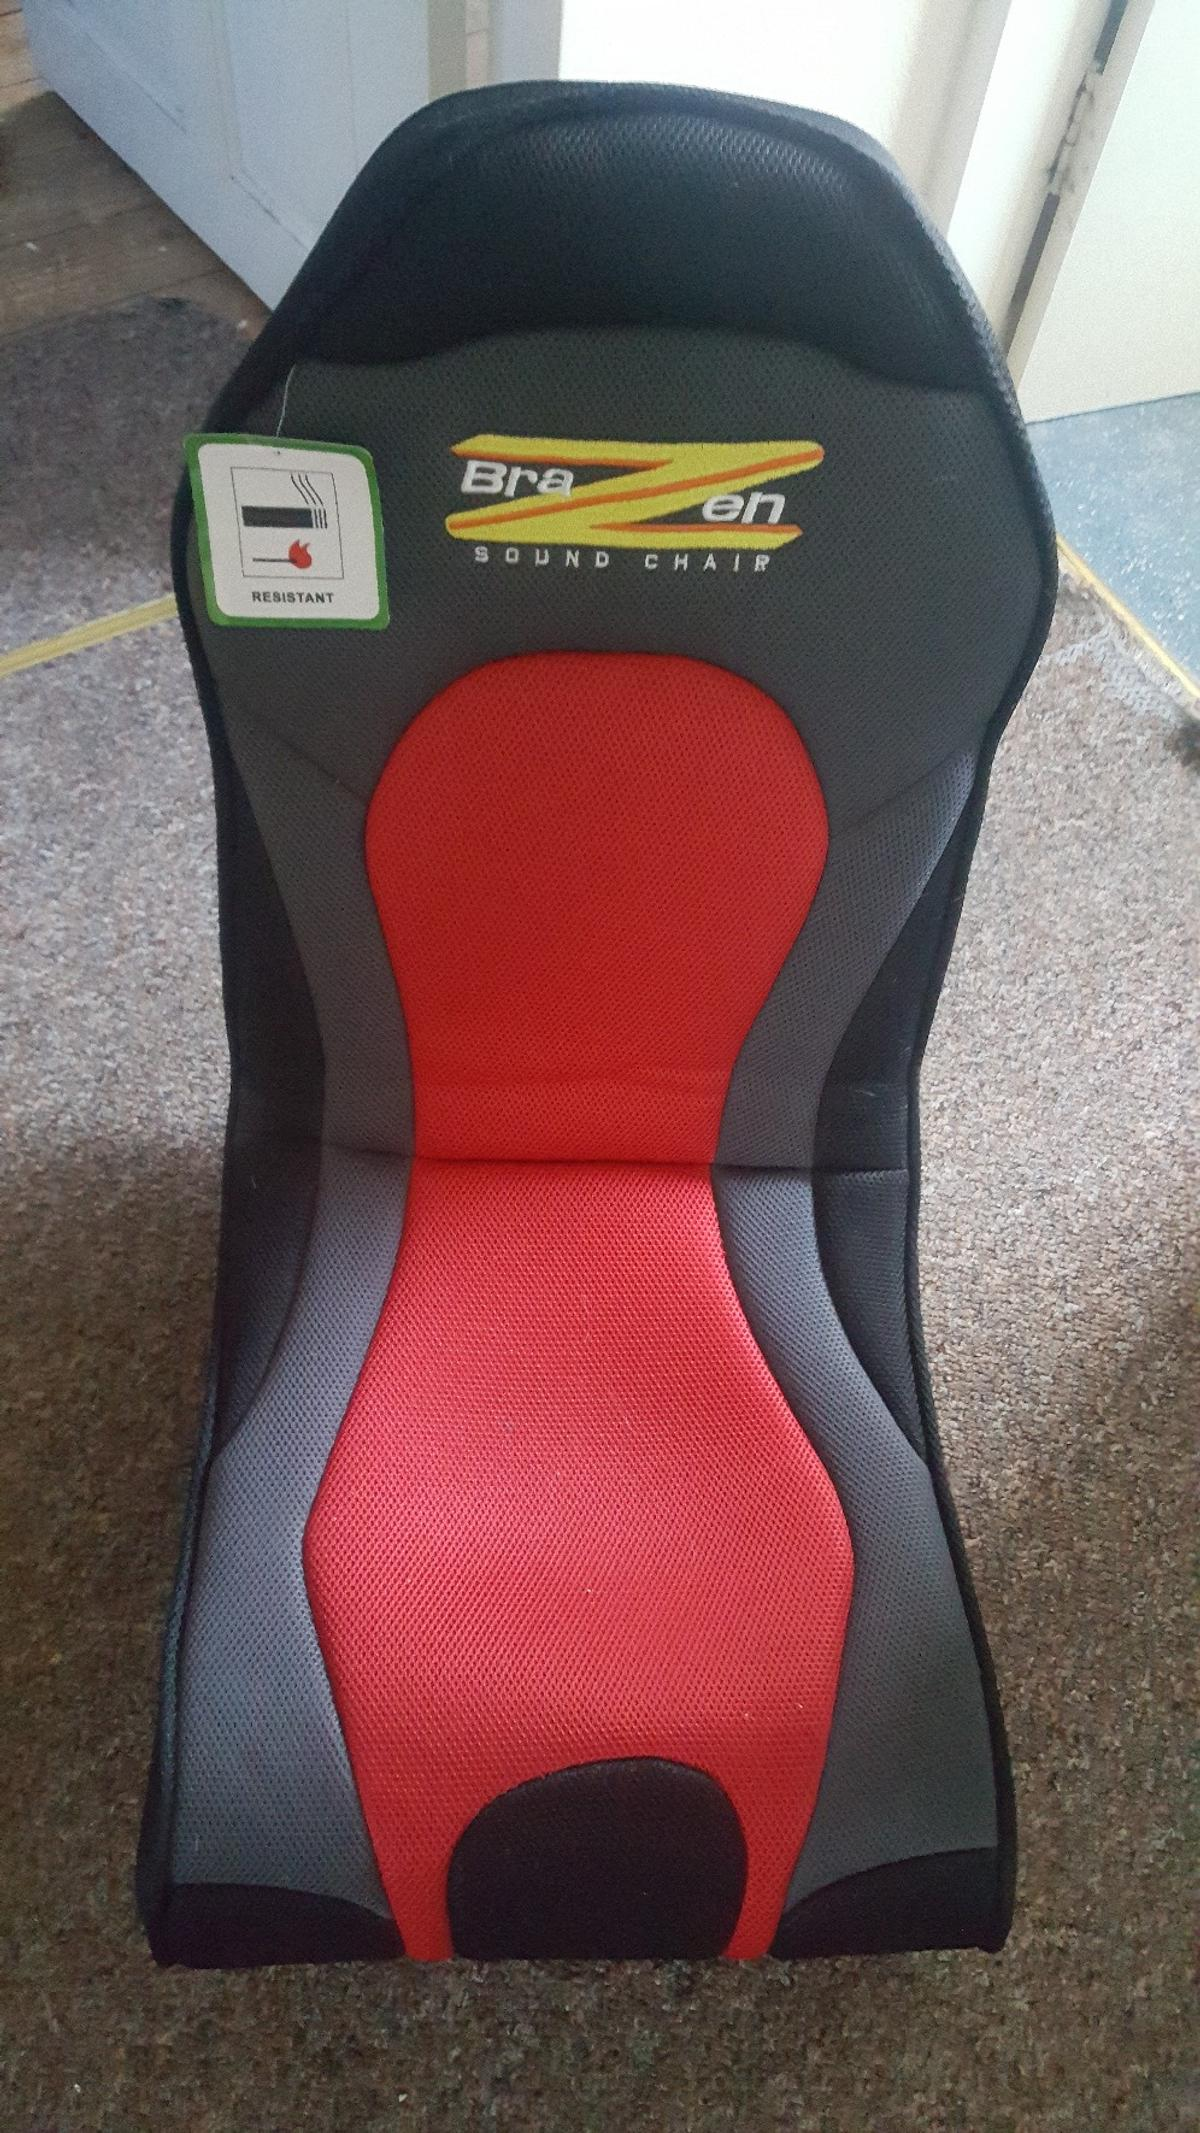 Marvelous Reducedgaming Chair Brazen Sabre 2 1 Rocker In B37 Solihull Caraccident5 Cool Chair Designs And Ideas Caraccident5Info